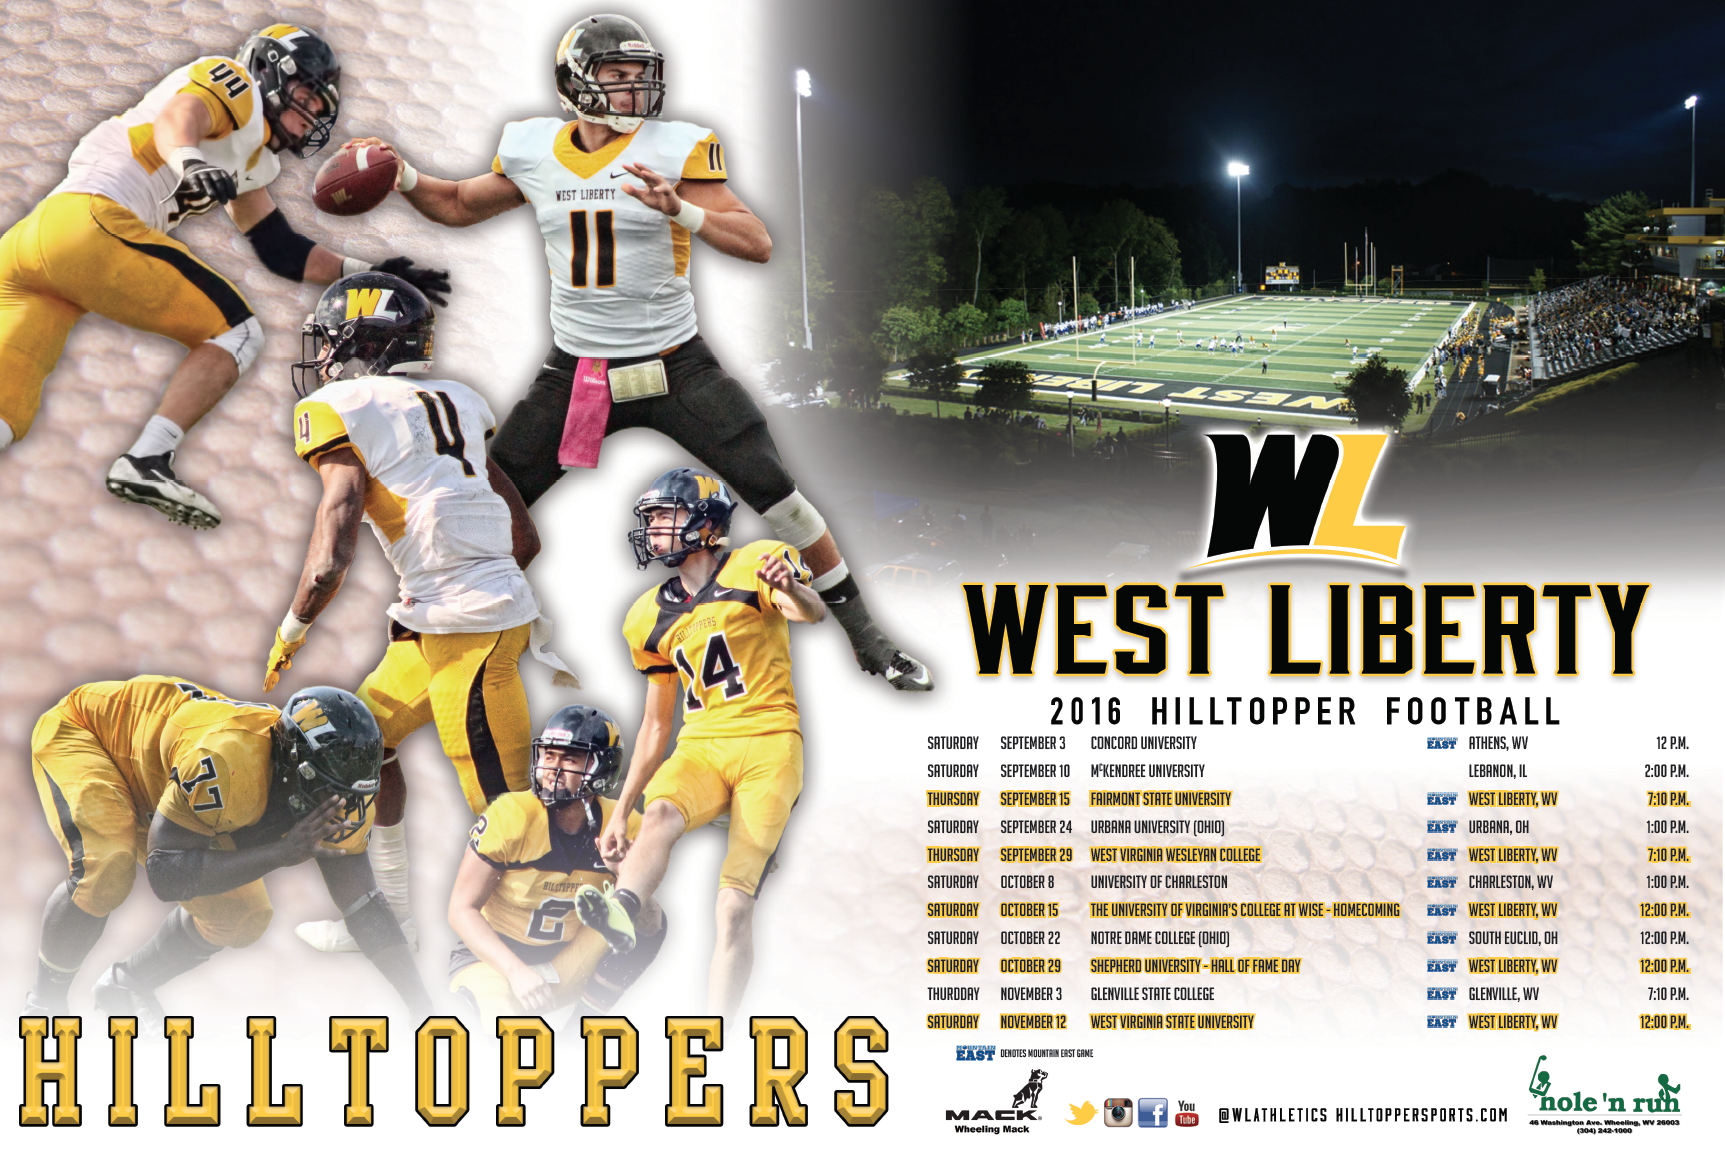 West Liberty Football schedule poster (With images) West